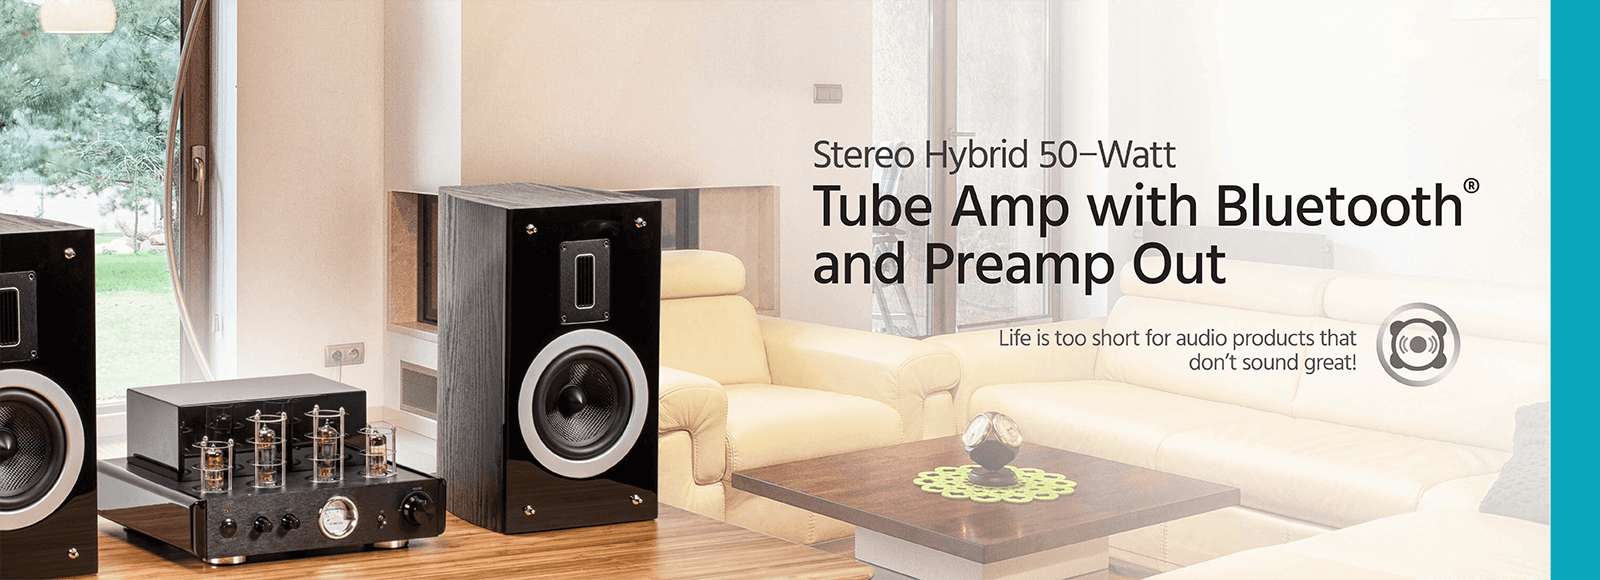 Compact Stereo Hybrid 50-Watt Tube Amp with Bluetooth